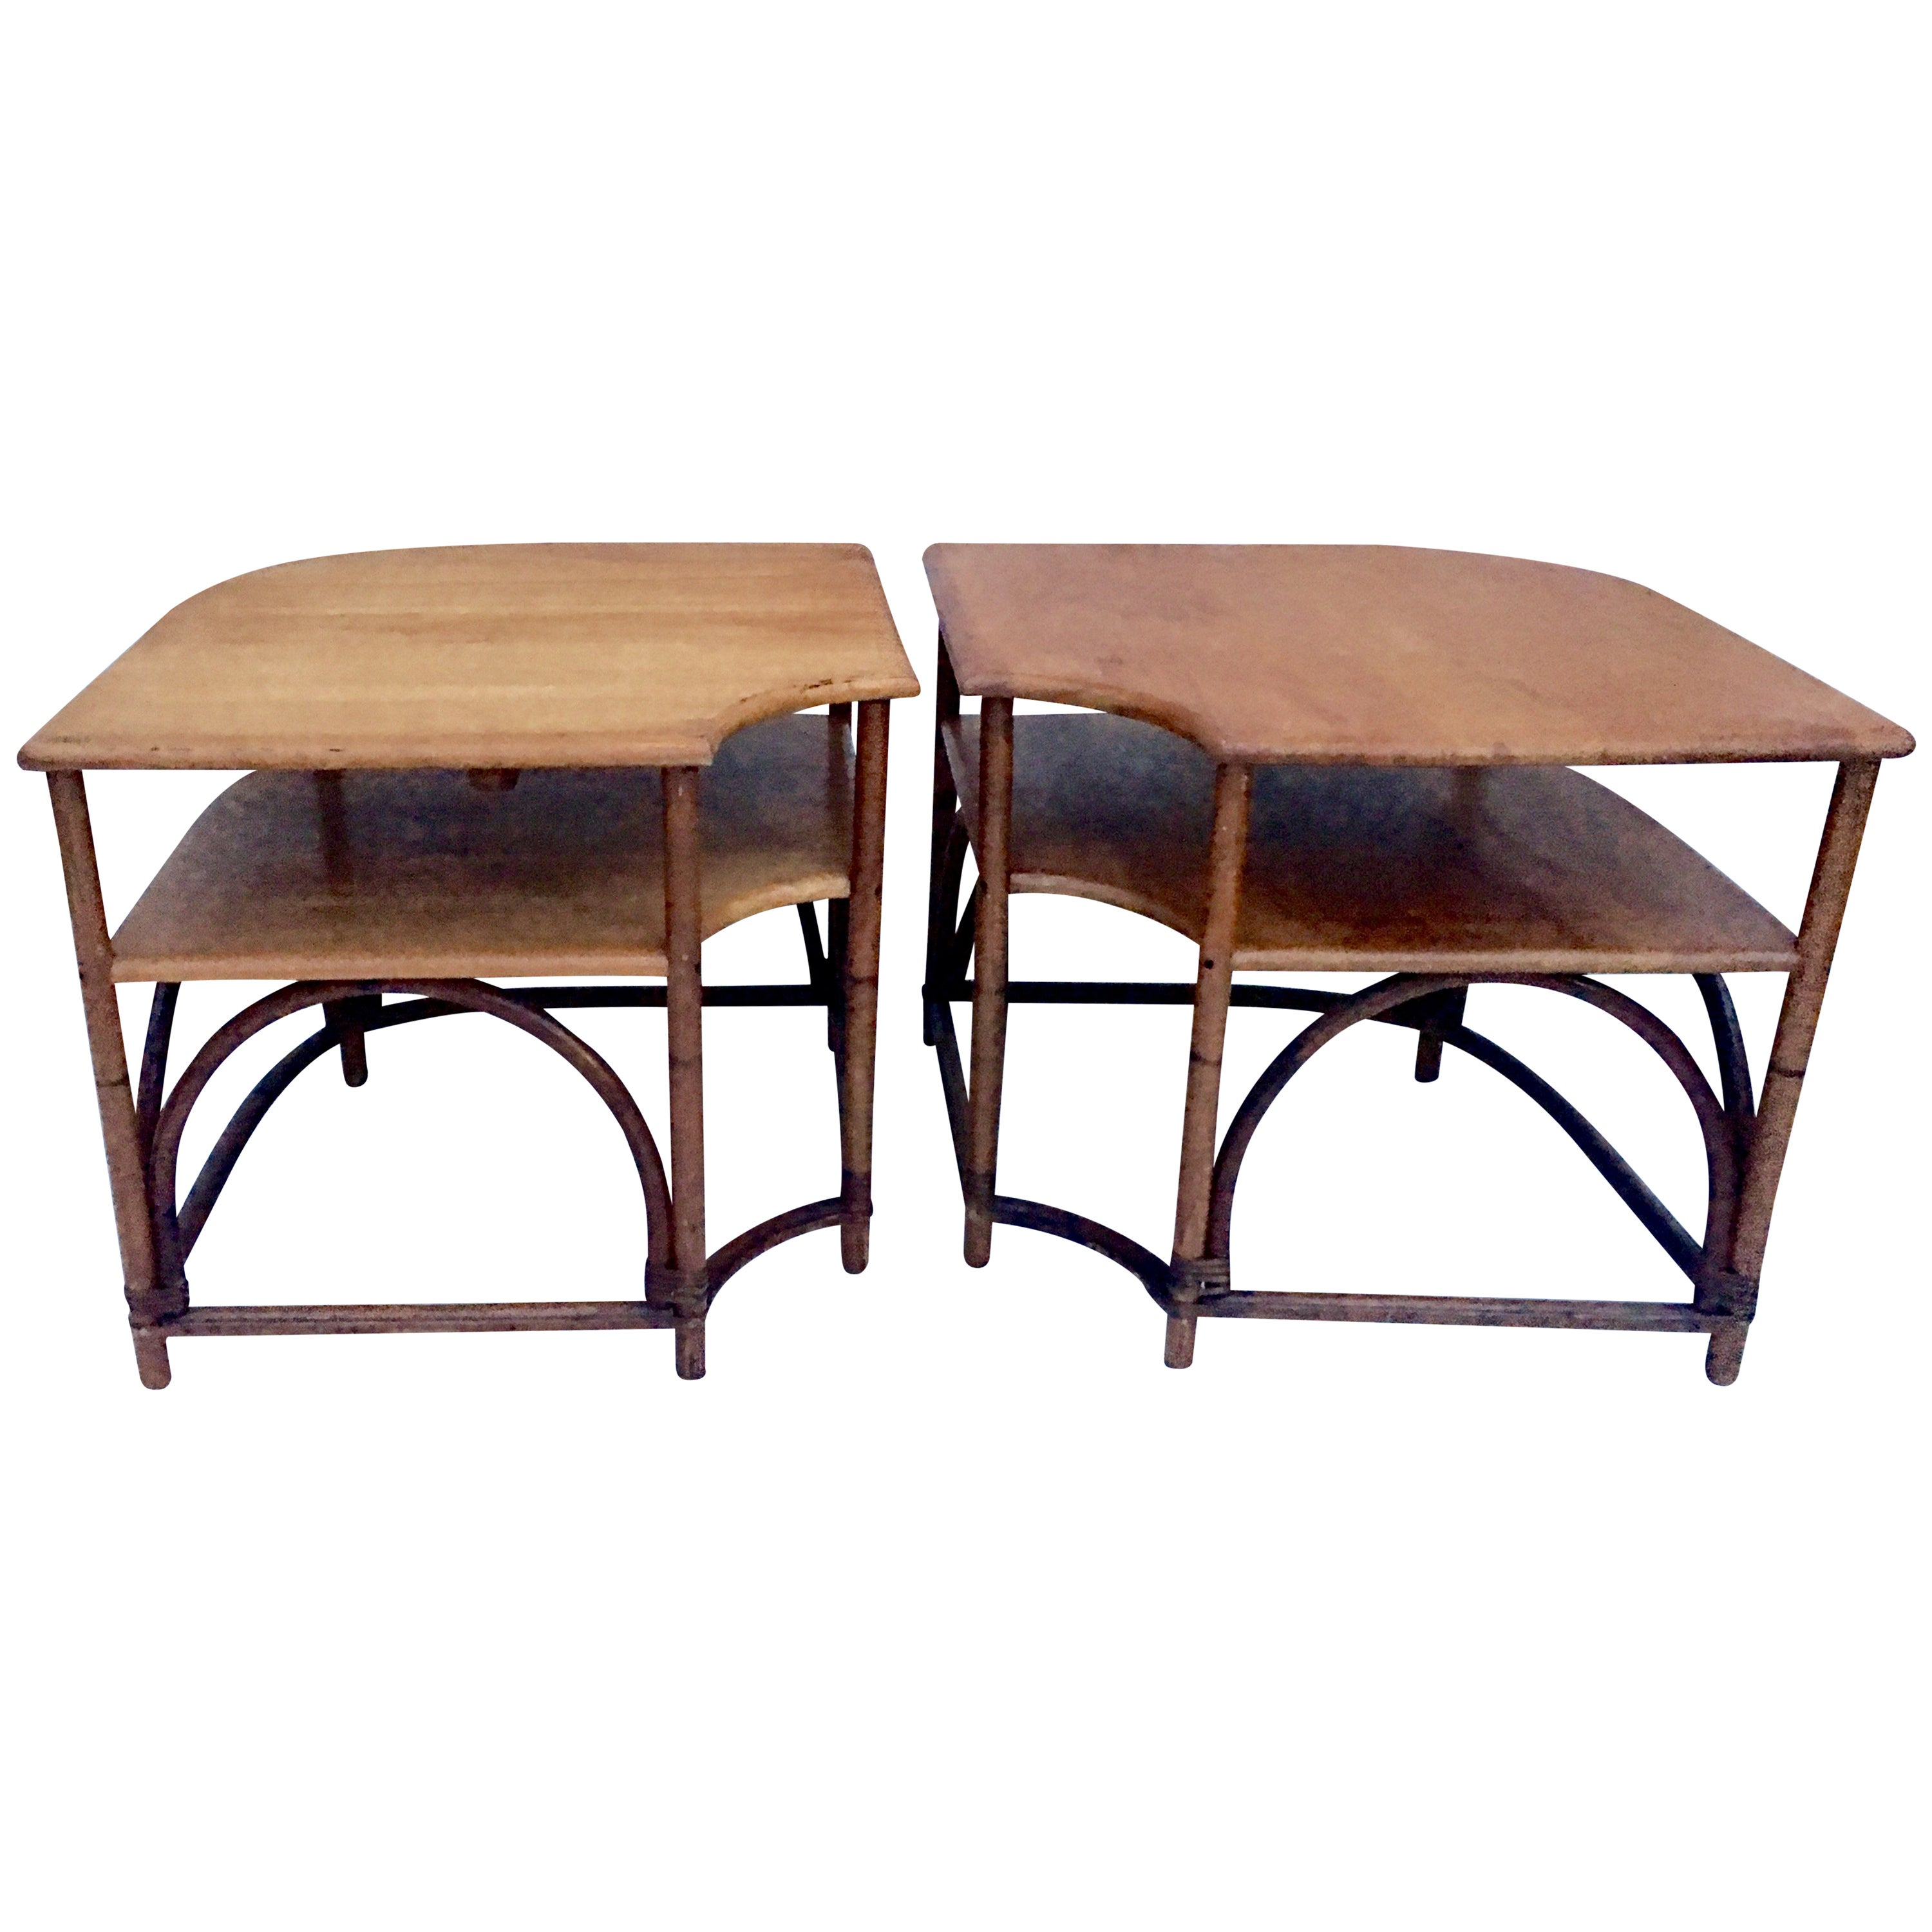 Mid-20th Century Pair Of Teak & Rattan Two-Tier Side Tables